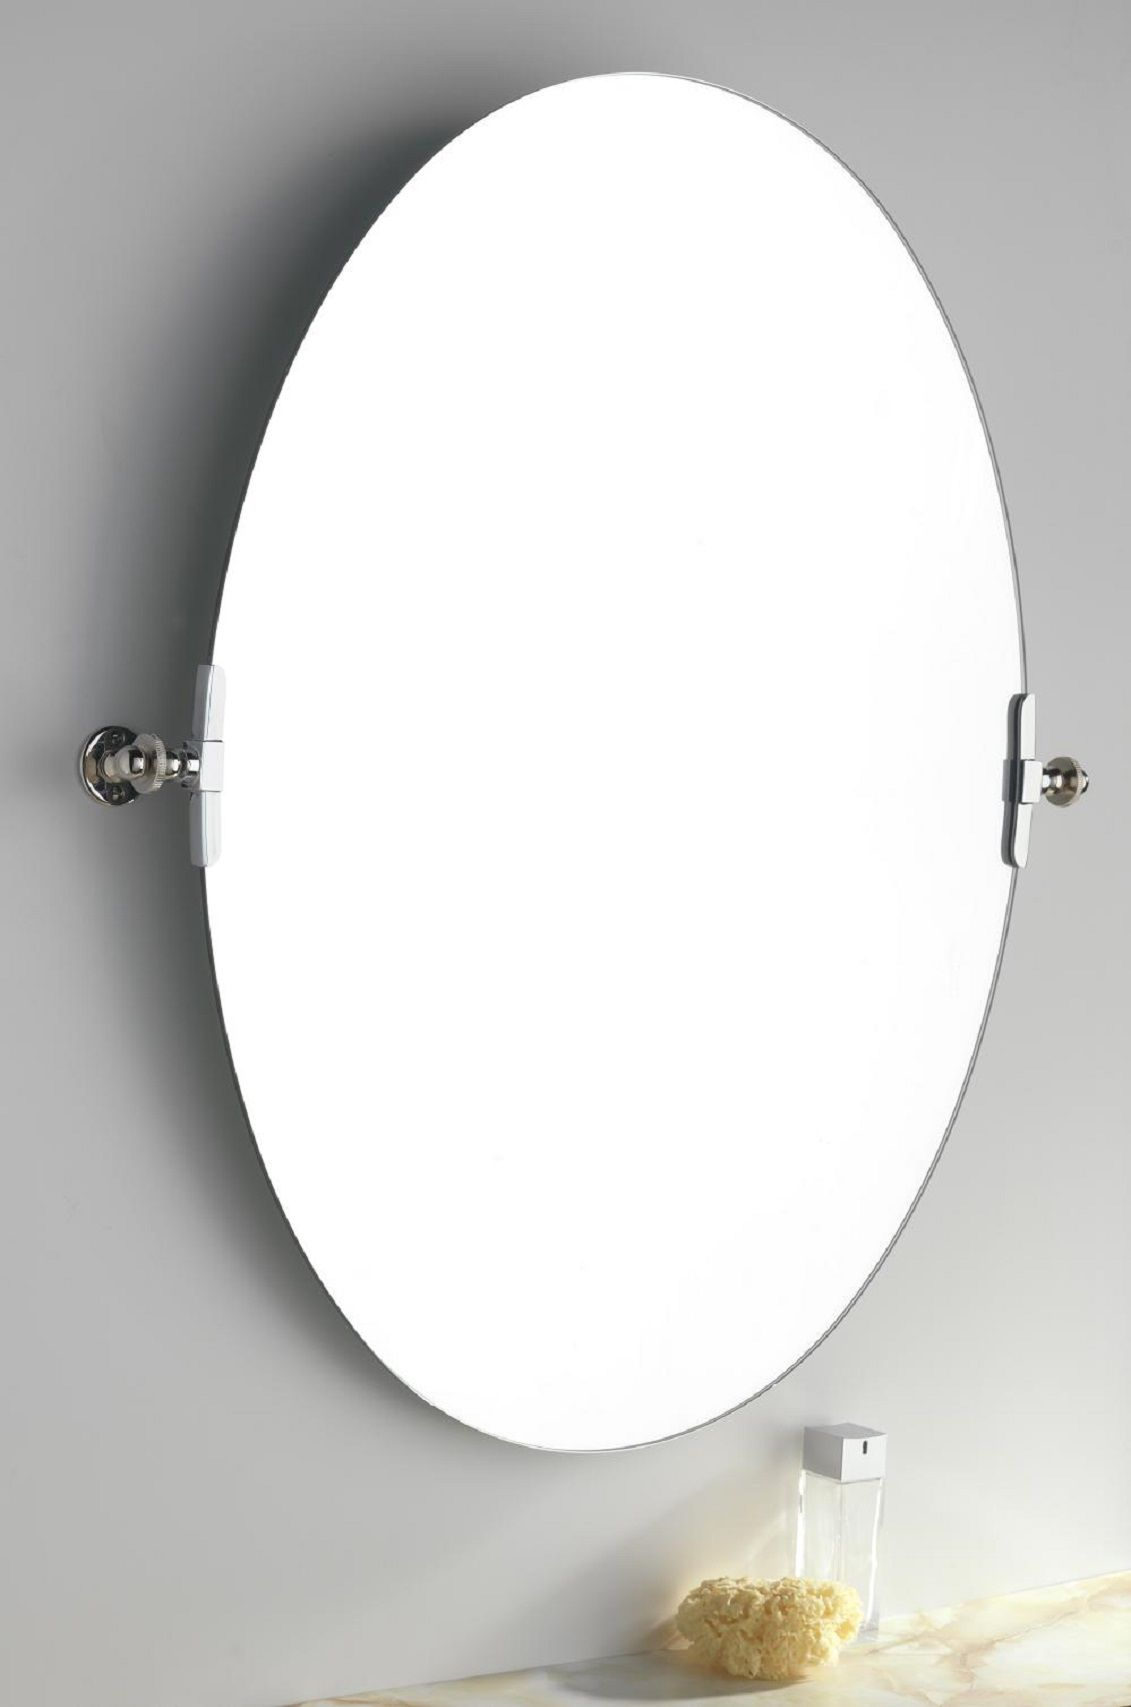 Bathroom oval mirrors add beauty and elegance to your bathroom